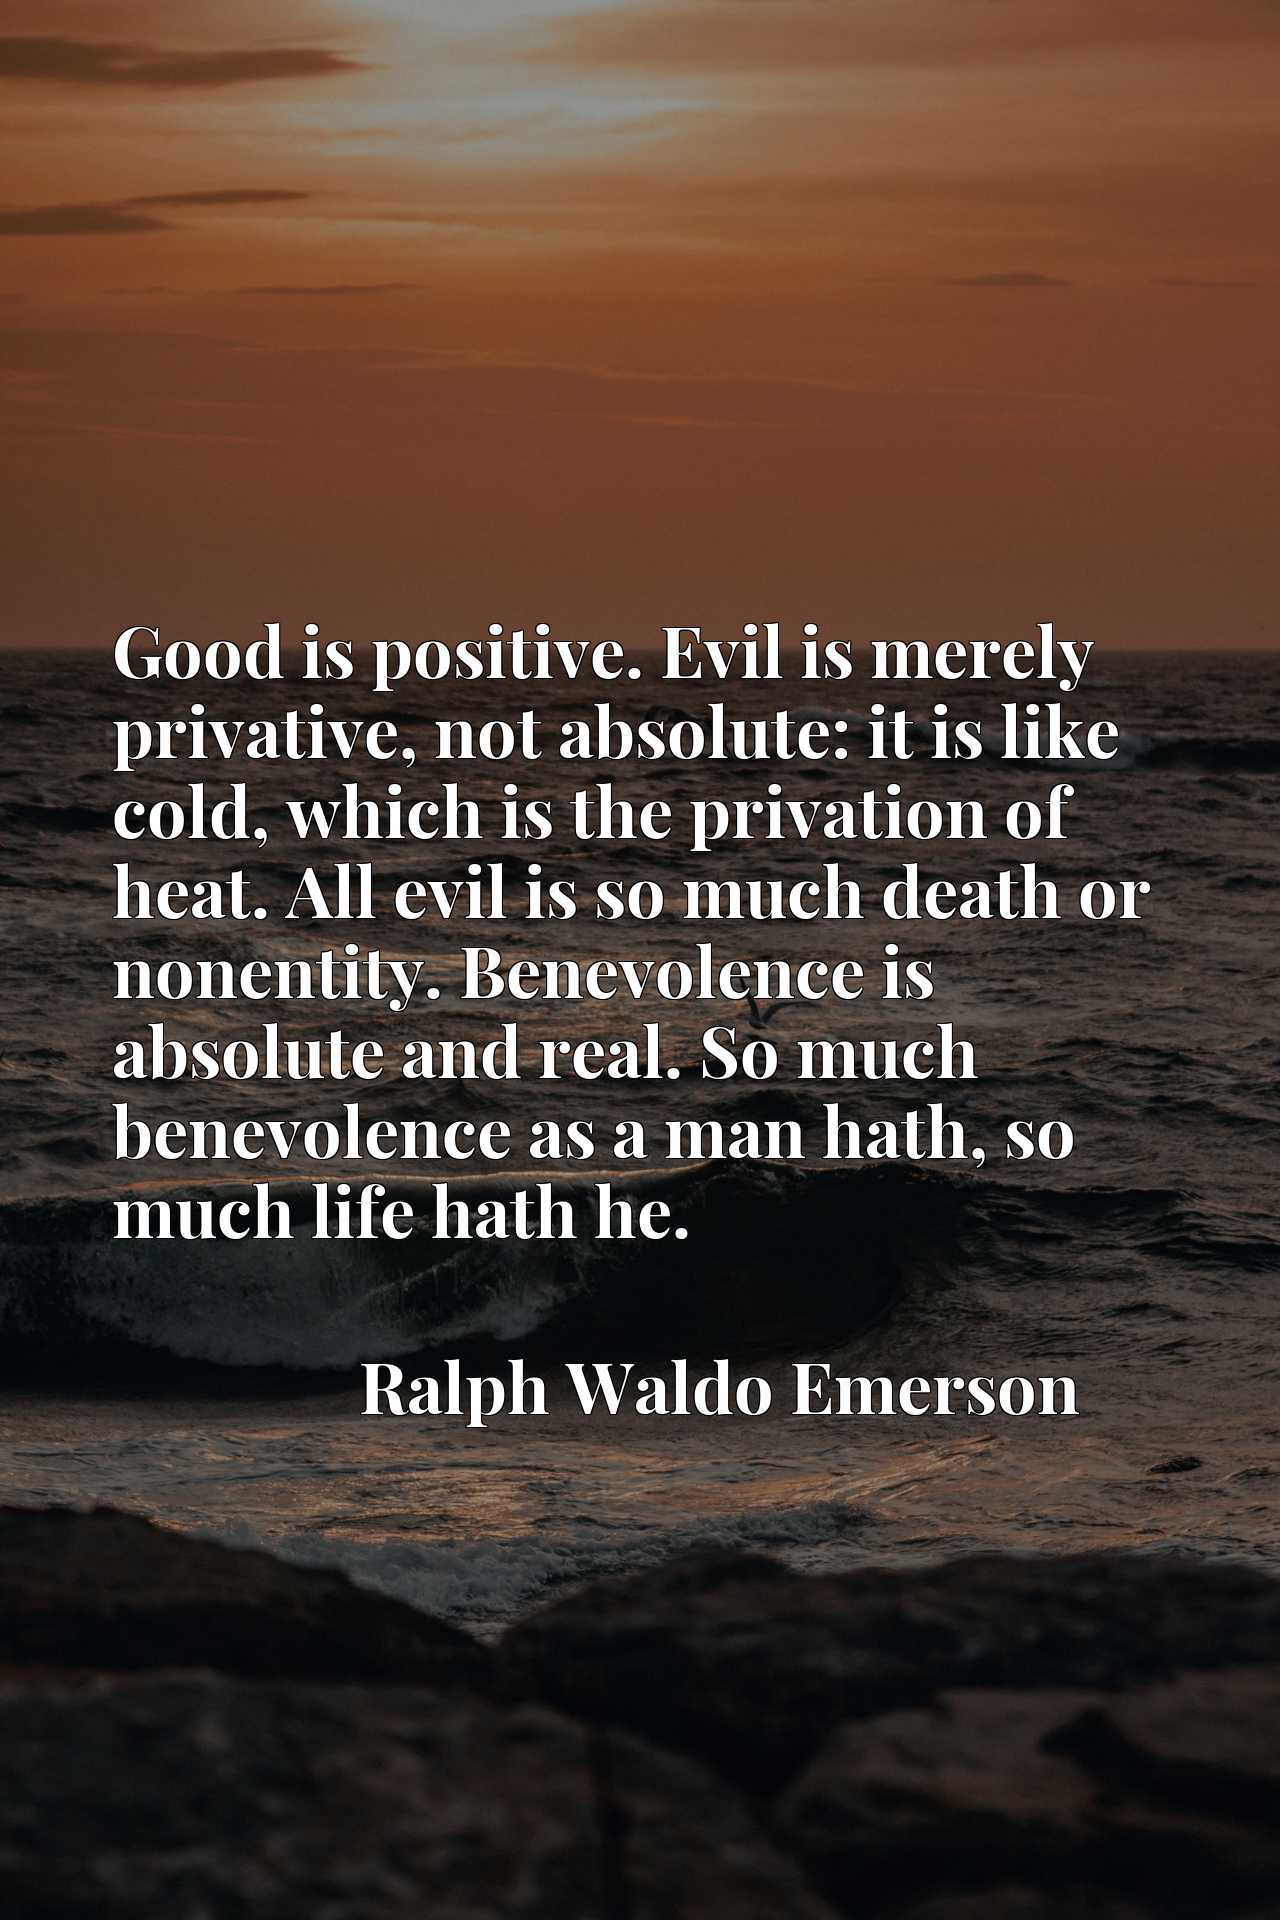 Good is positive. Evil is merely privative, not absolute: it is like cold, which is the privation of heat. All evil is so much death or nonentity. Benevolence is absolute and real. So much benevolence as a man hath, so much life hath he.